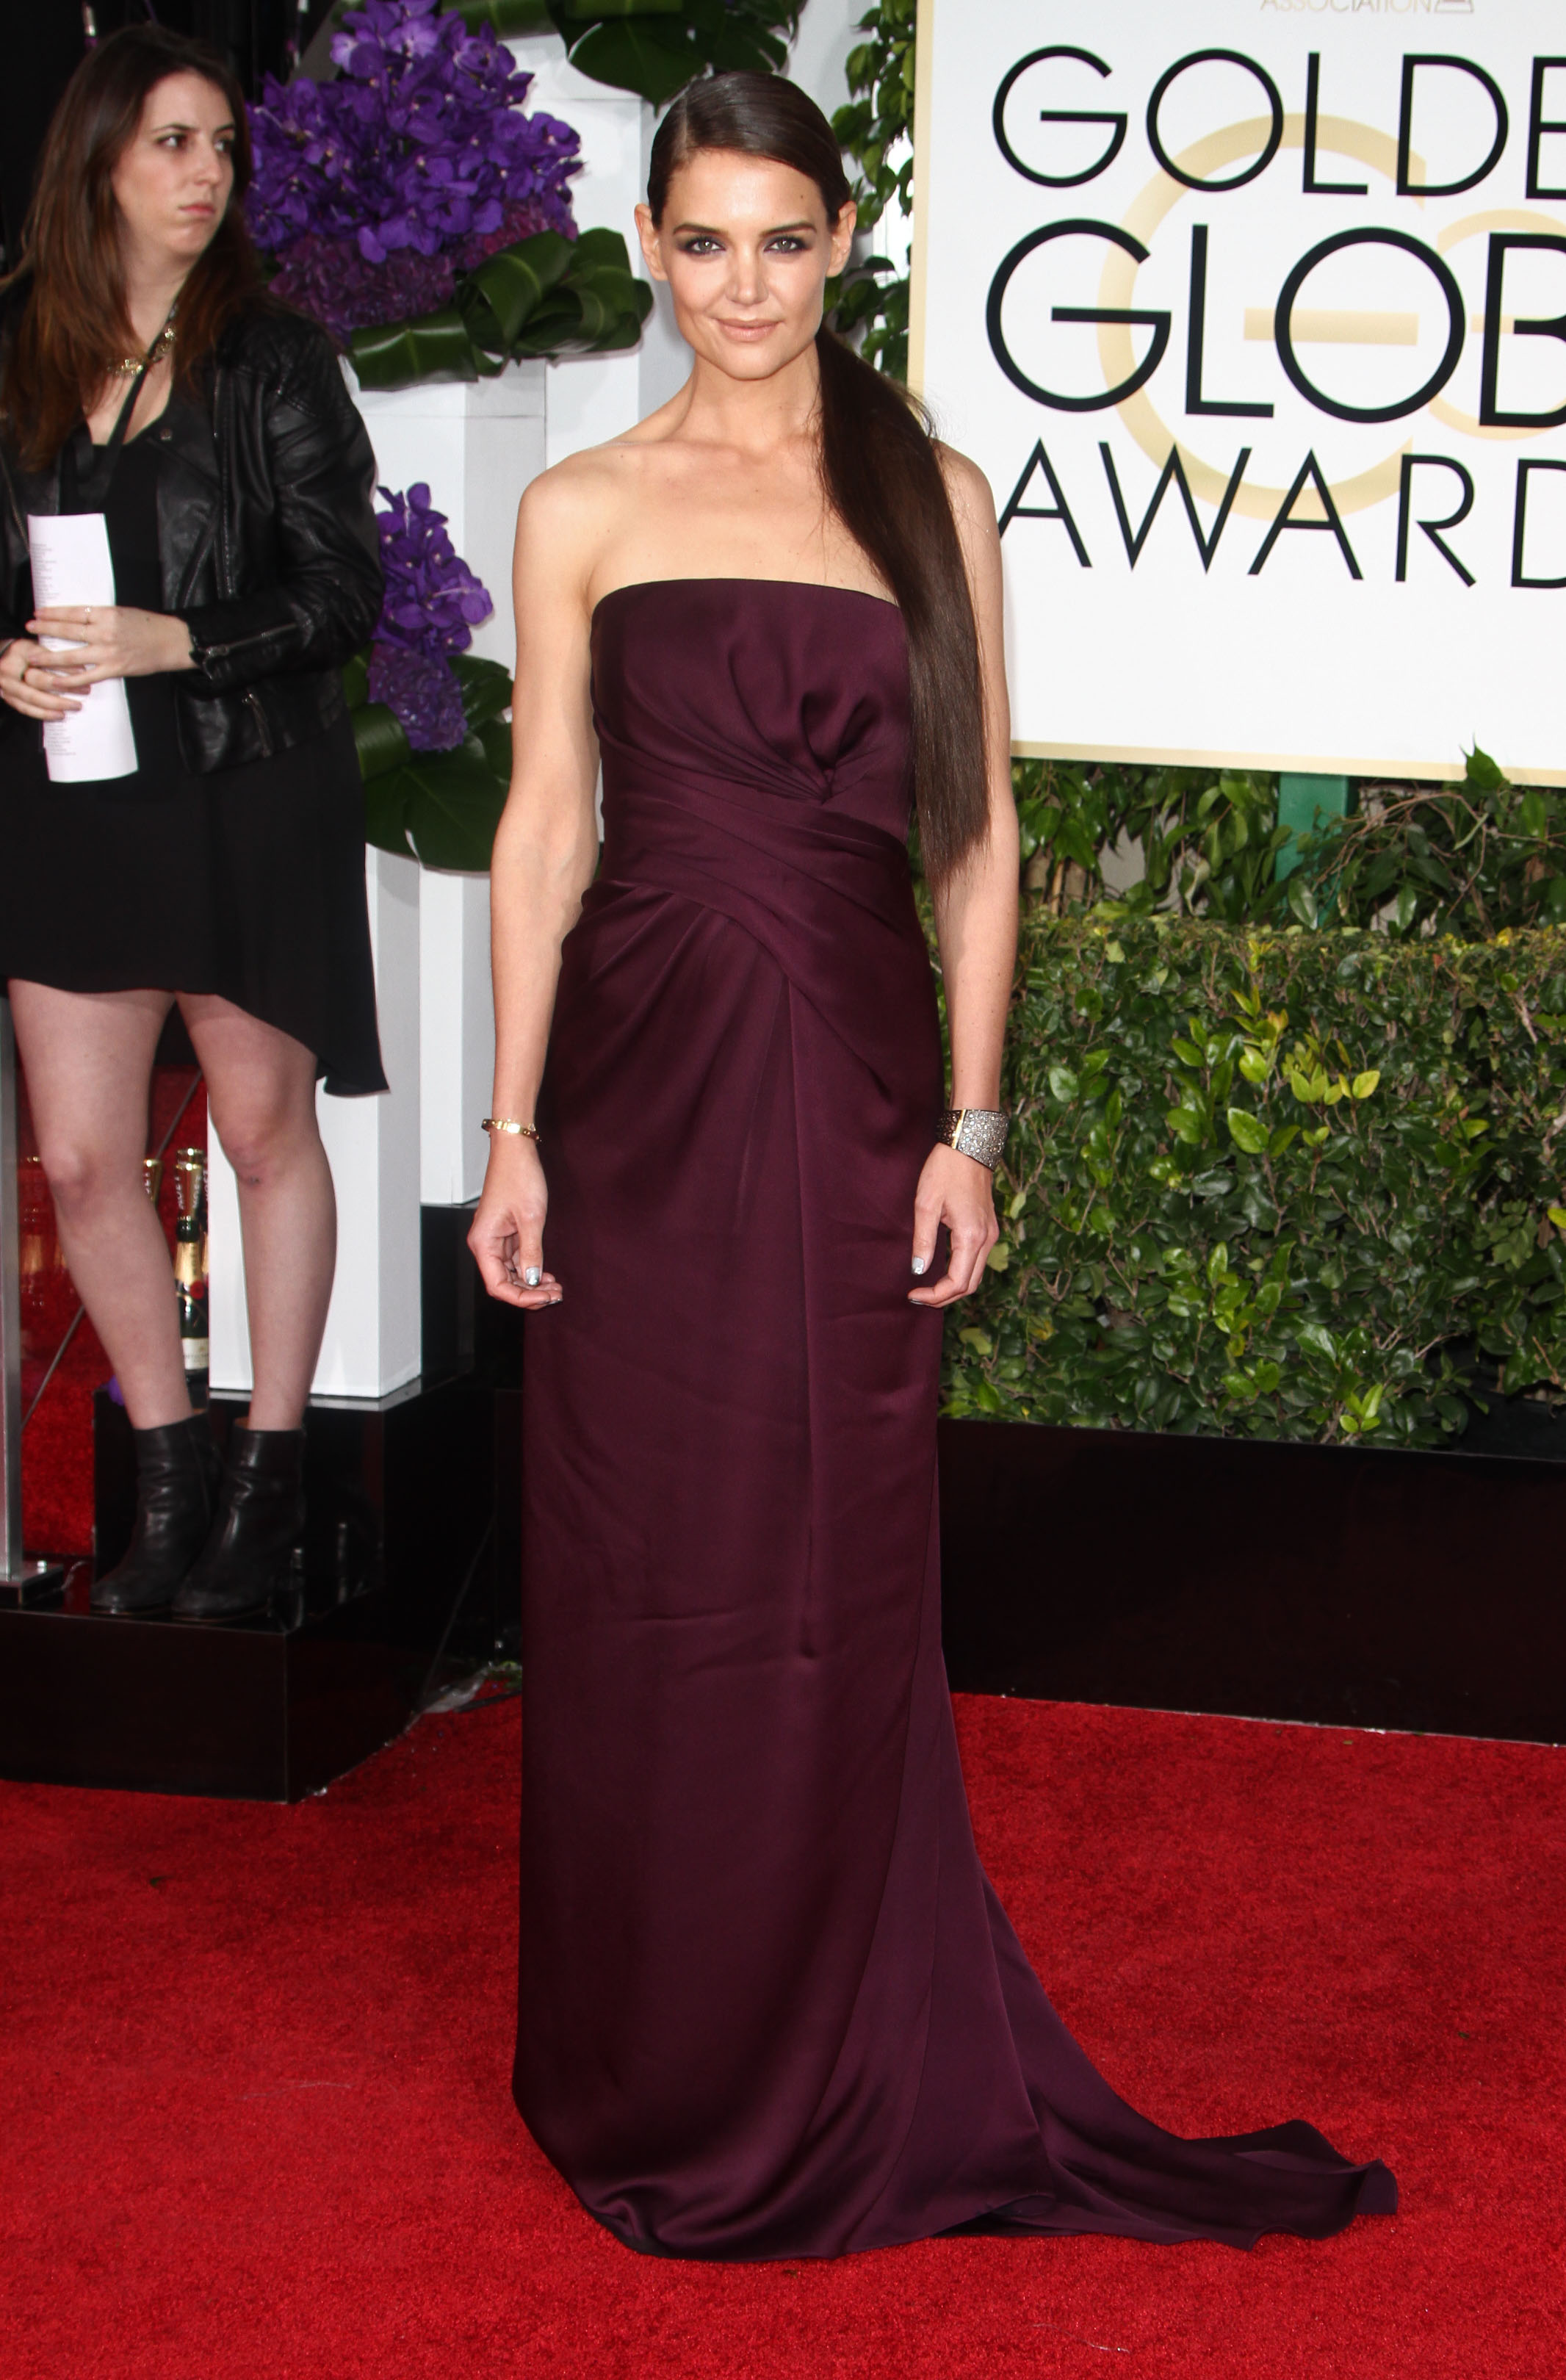 Golden Globes Well Played: Katie Holmes in Marchesa